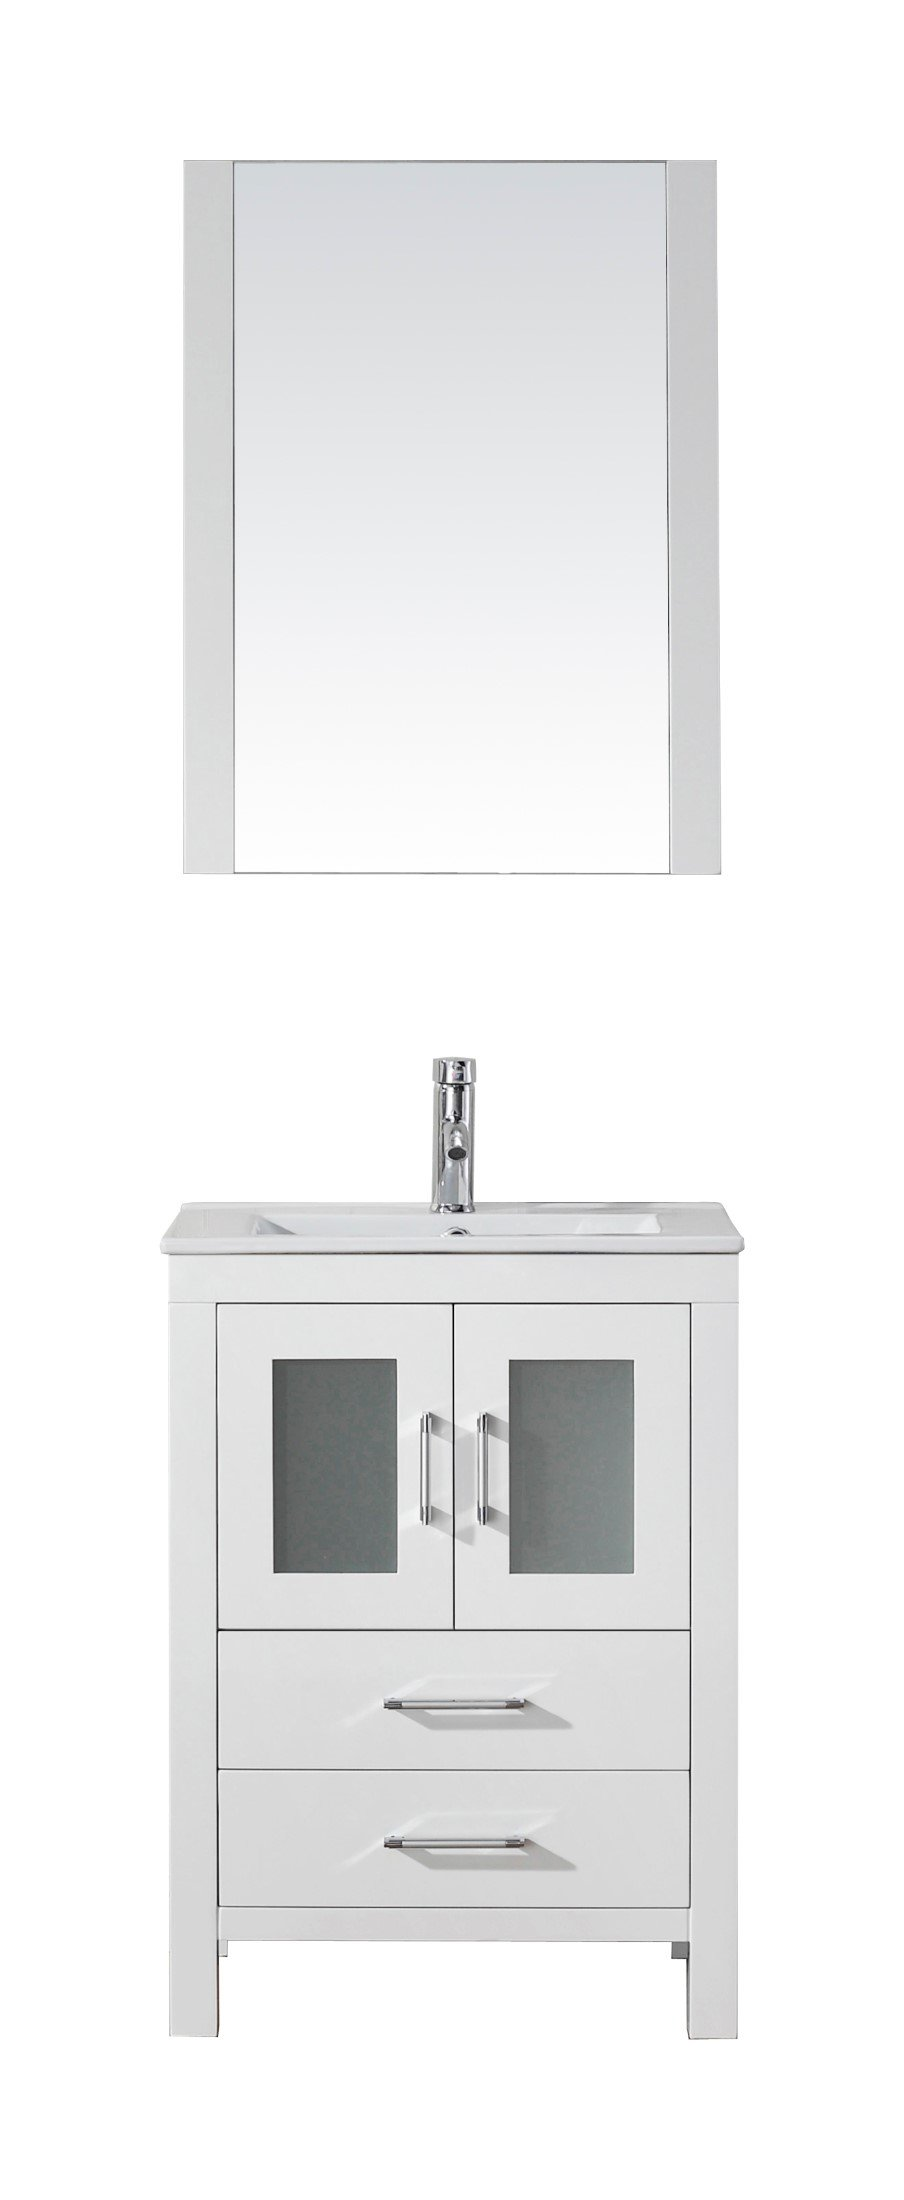 Virtu USA KS-70024-C-WH Modern 24-Inch Single Sink Bathroom Vanity Set with Polished Chrome Faucet, White